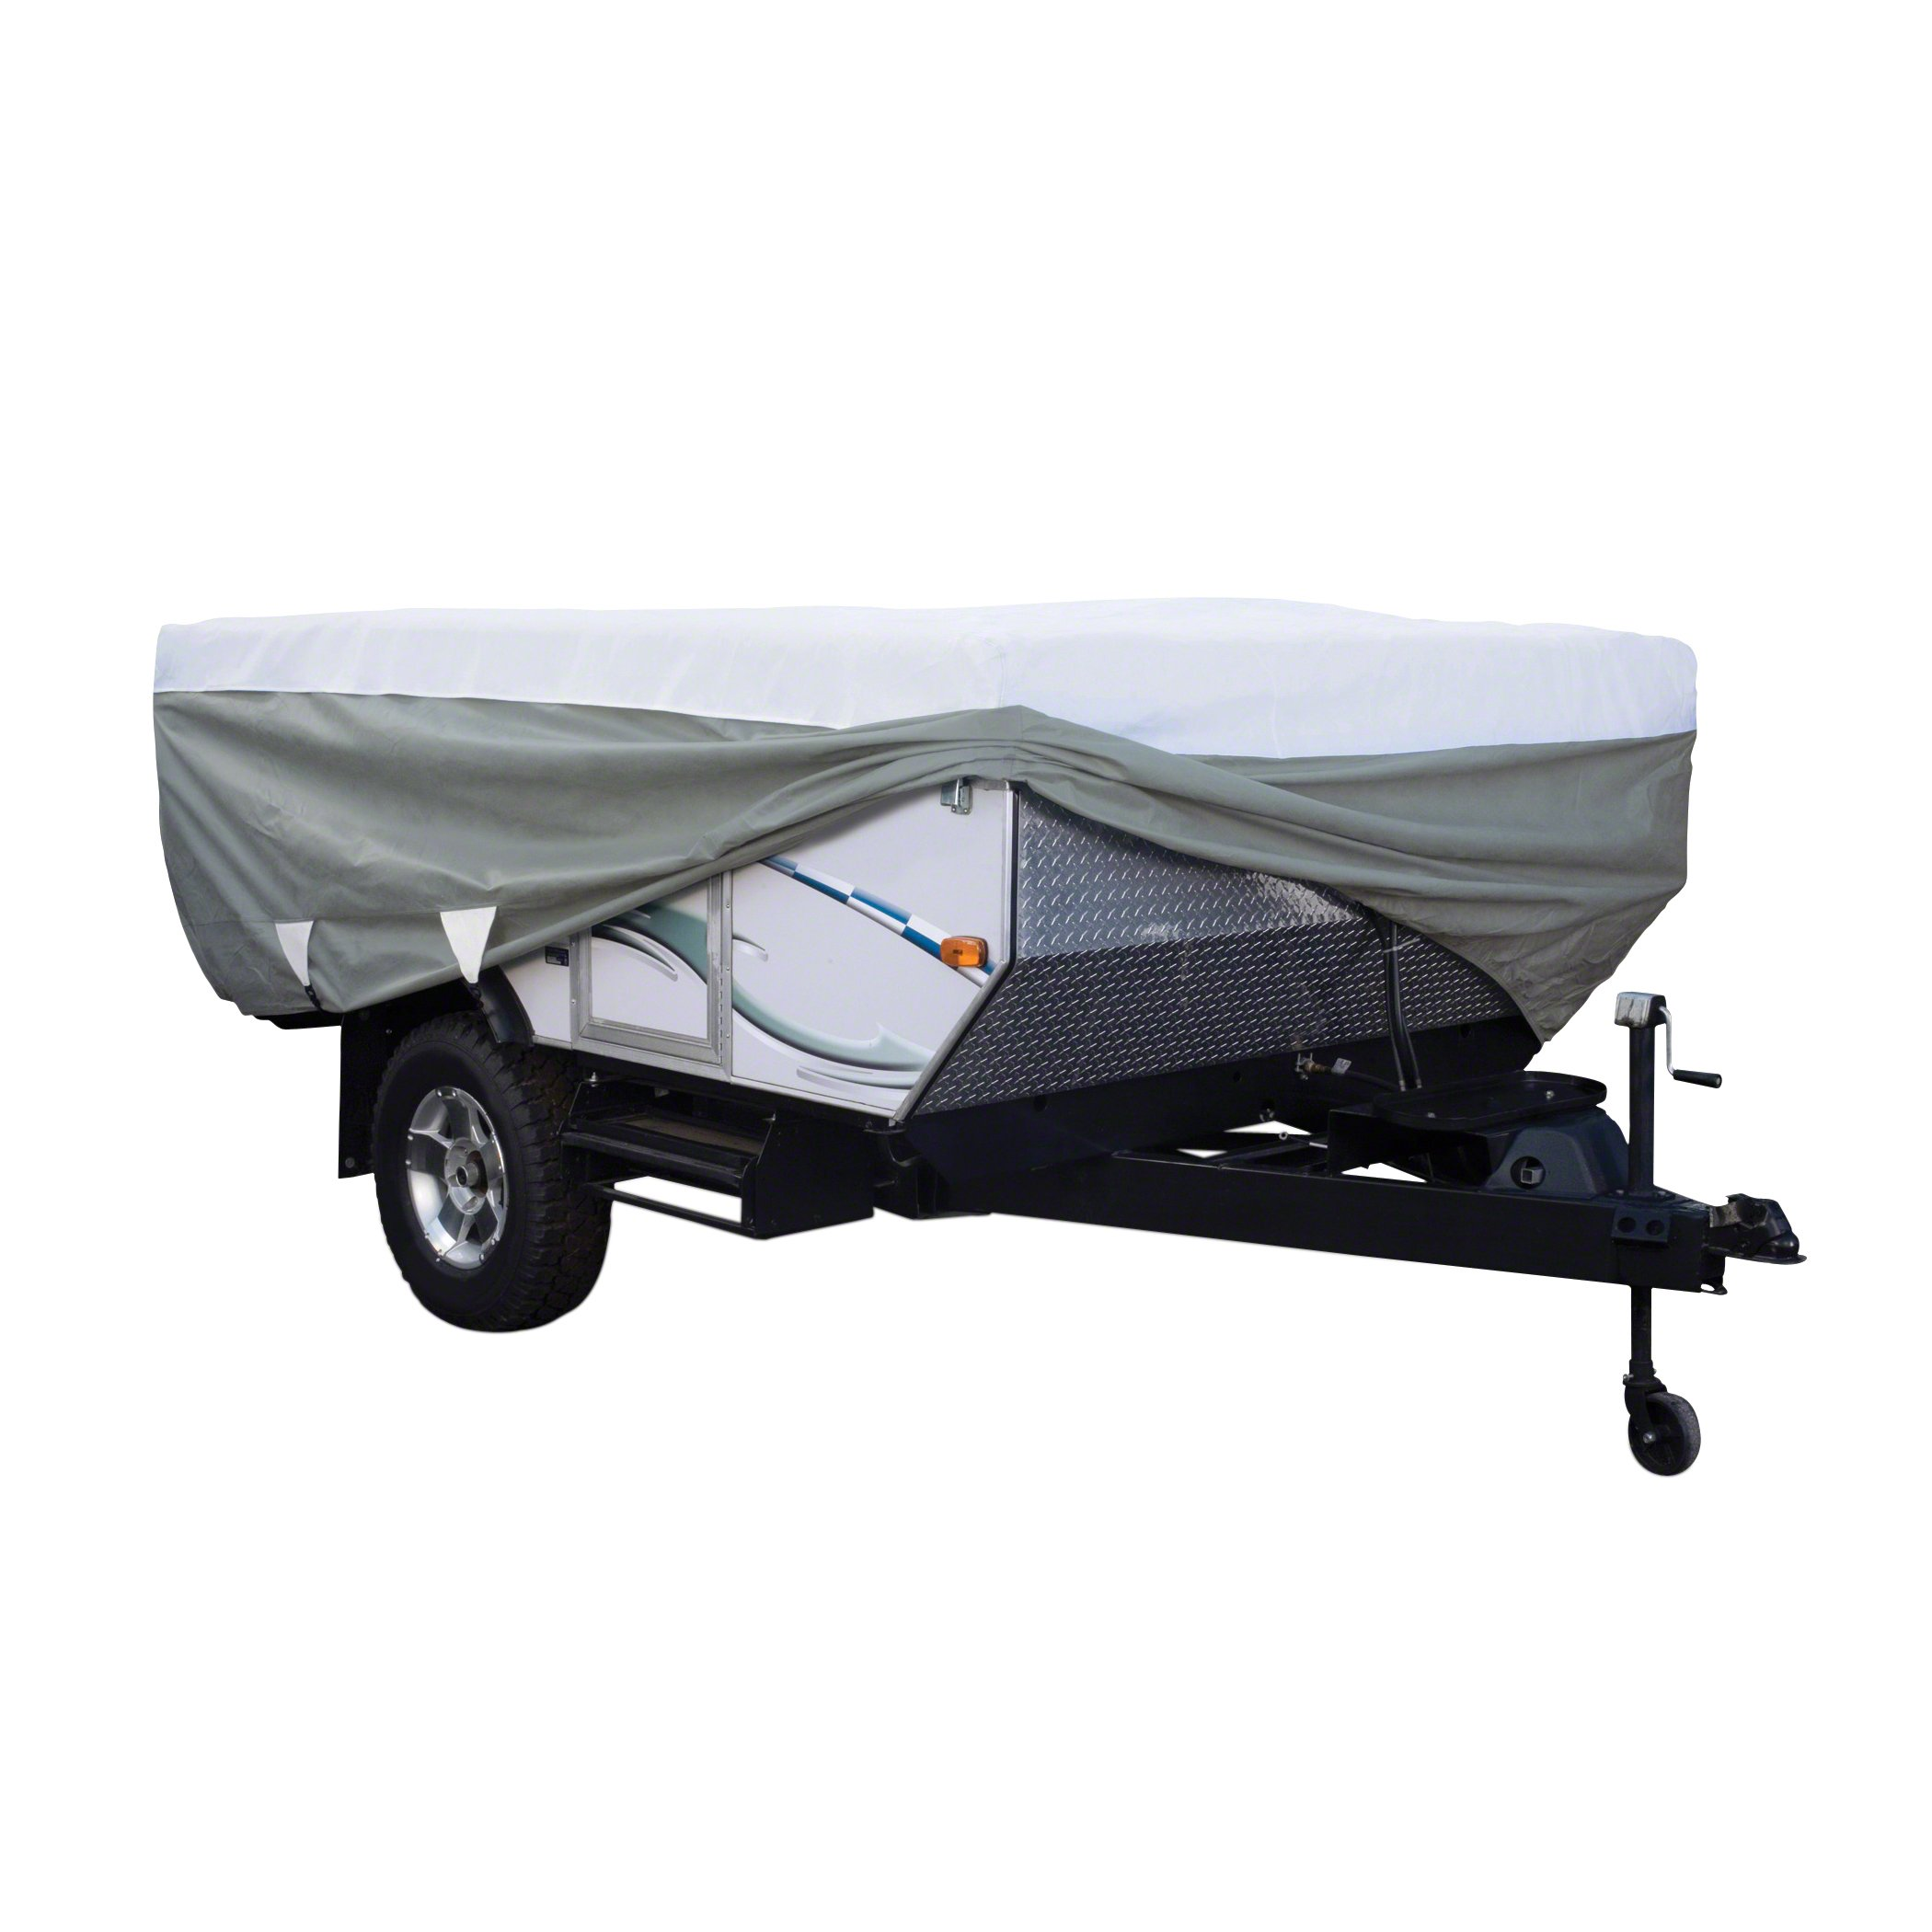 Classic Accessories OverDrive PolyPro 3 Deluxe Folding Camping Trailer Cover, Fits Up To 8' 6'' Trailers by Classic Accessories